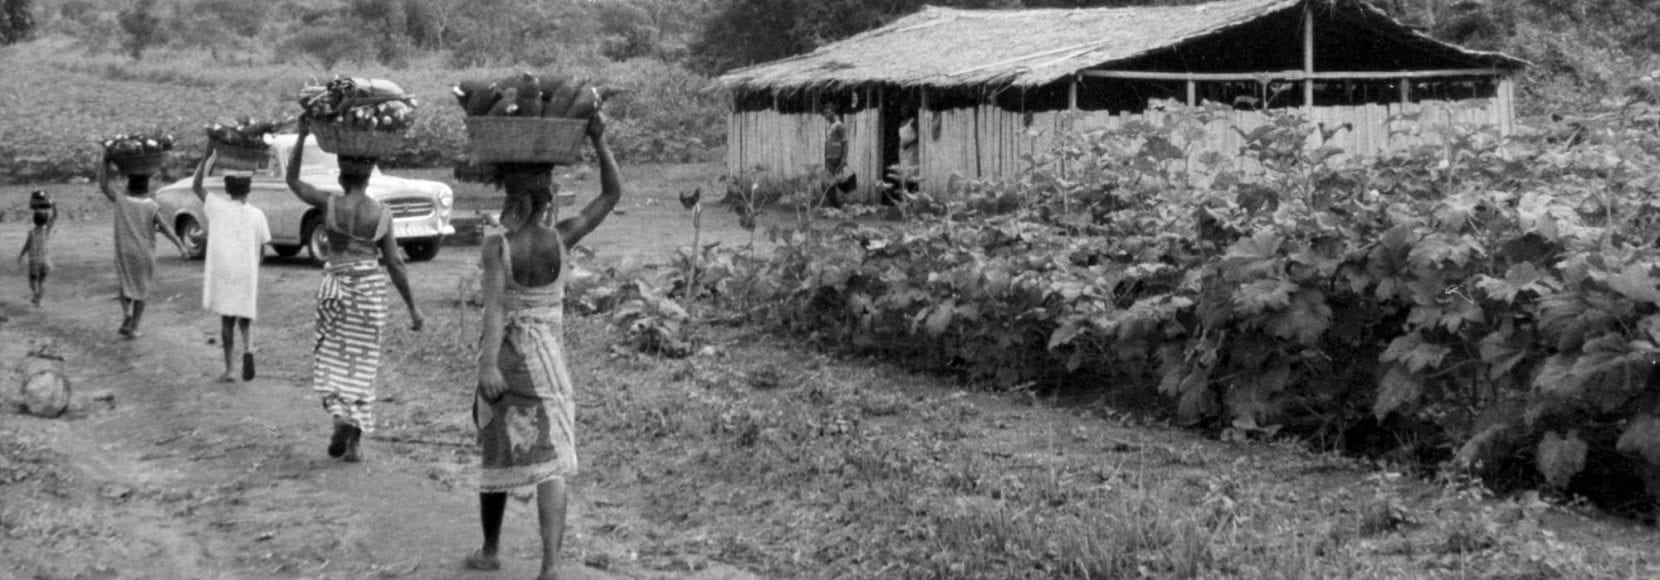 "TechnoServe's origin traces back to the village of Adidome, Ghana. In 1968, Ed Bullard launched TechnoServe – short for ""technology in the service of mankind."